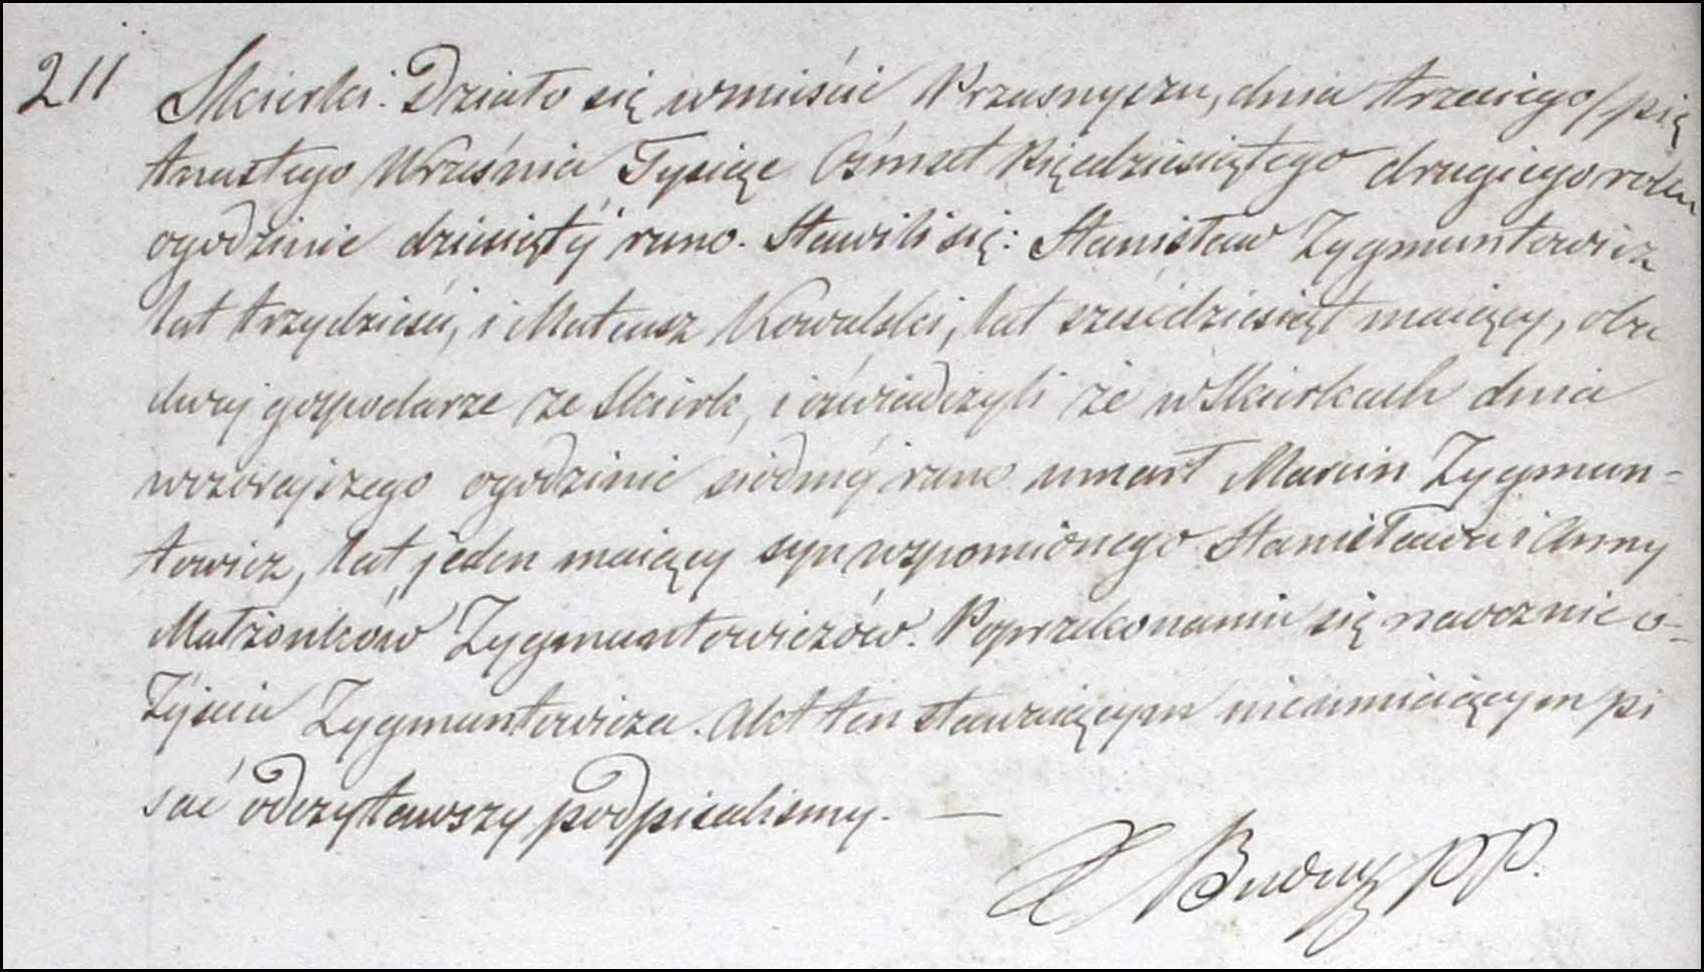 Death and Burial Record for Marcin Zygmuntowicz - 1852